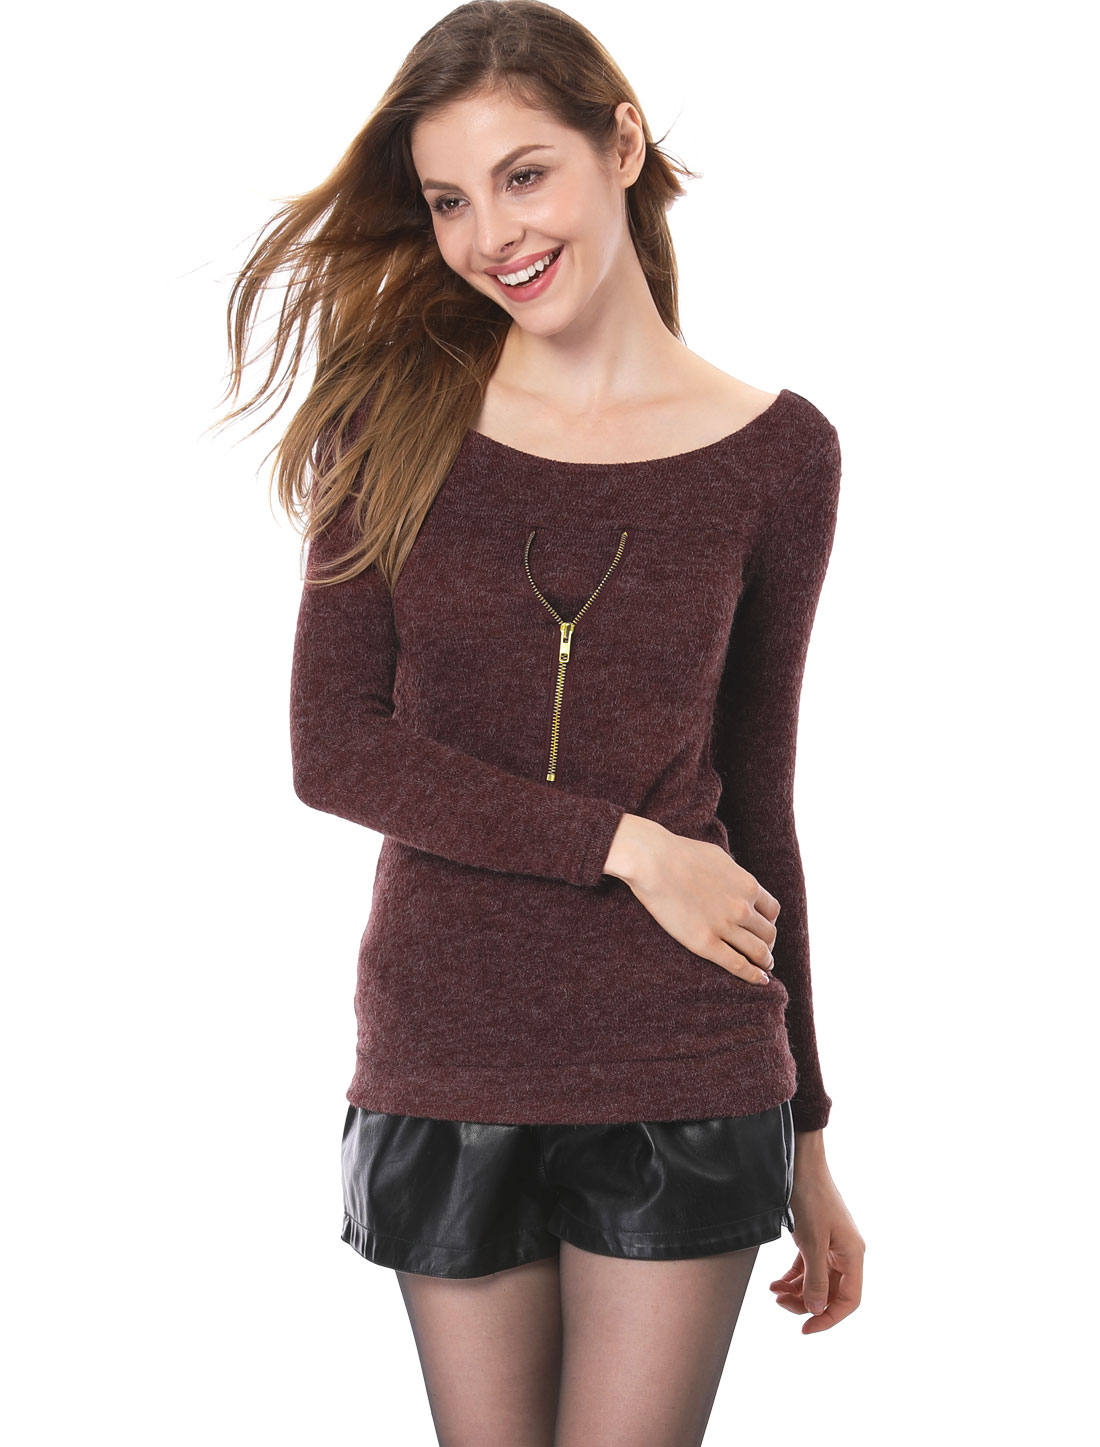 Women Boat Neck Gold Tone Zipper Decor Burgundy Kint Sweater S